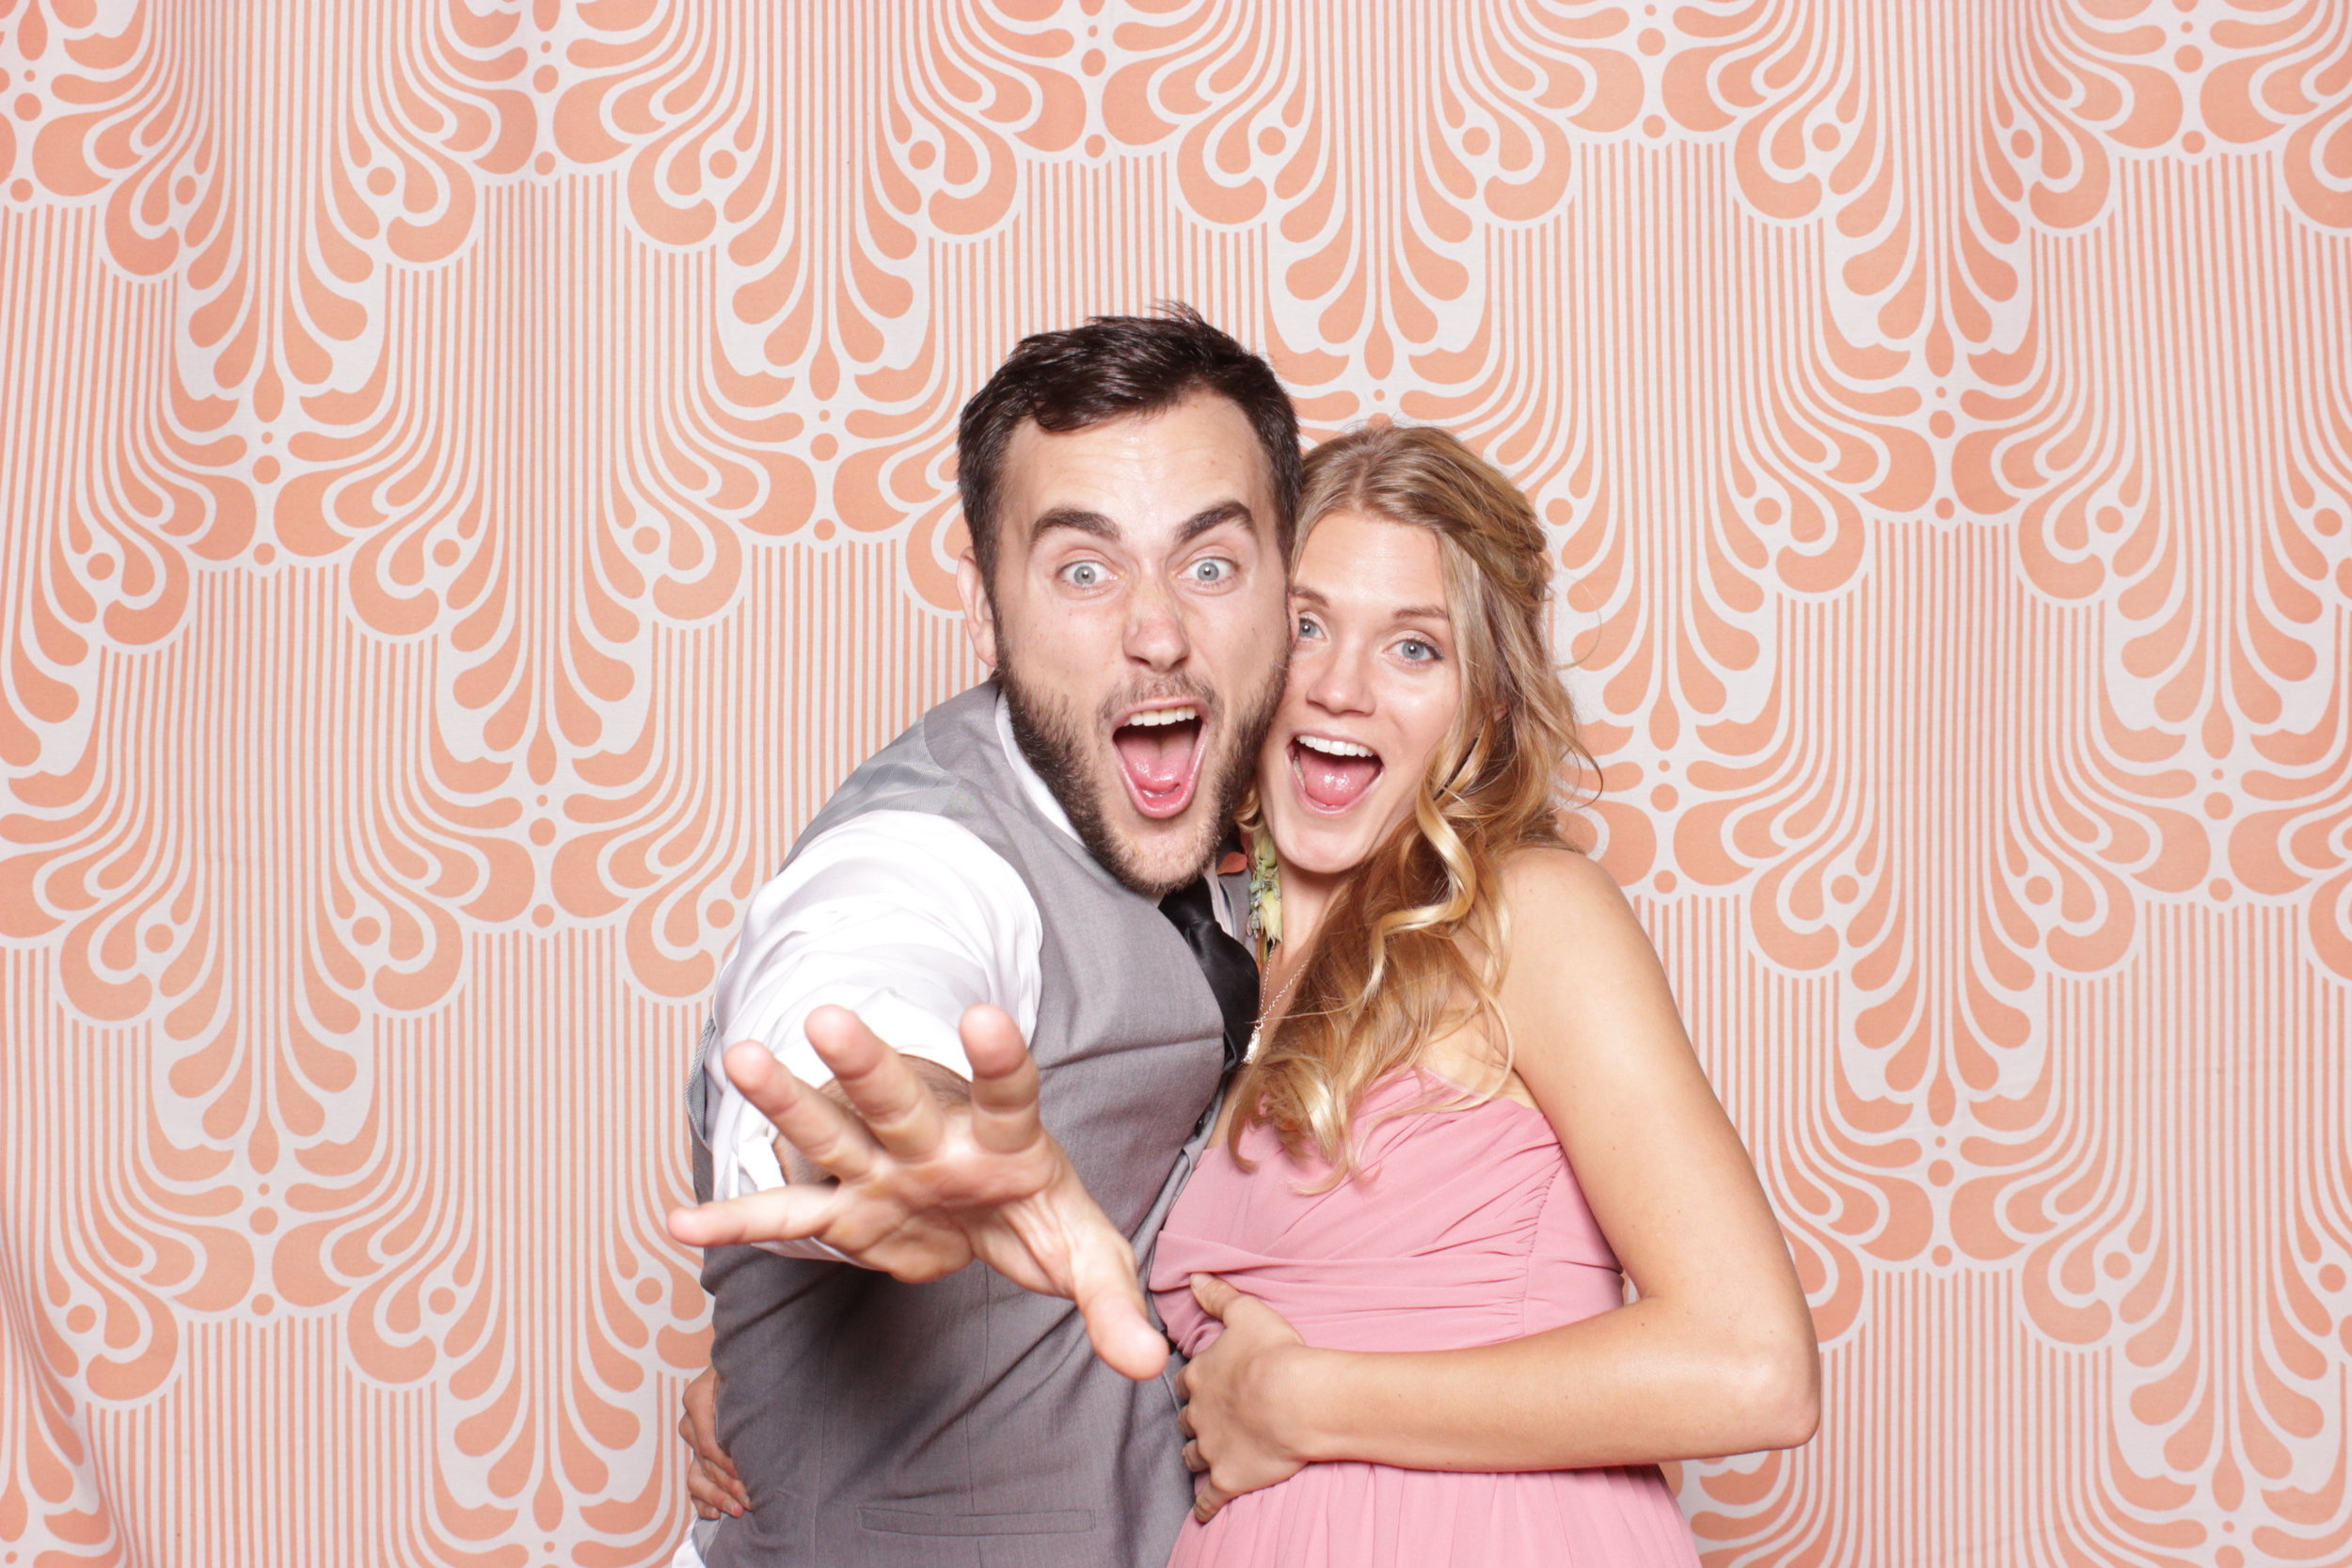 cool-backdrops-chico-photo-booth-peach-white